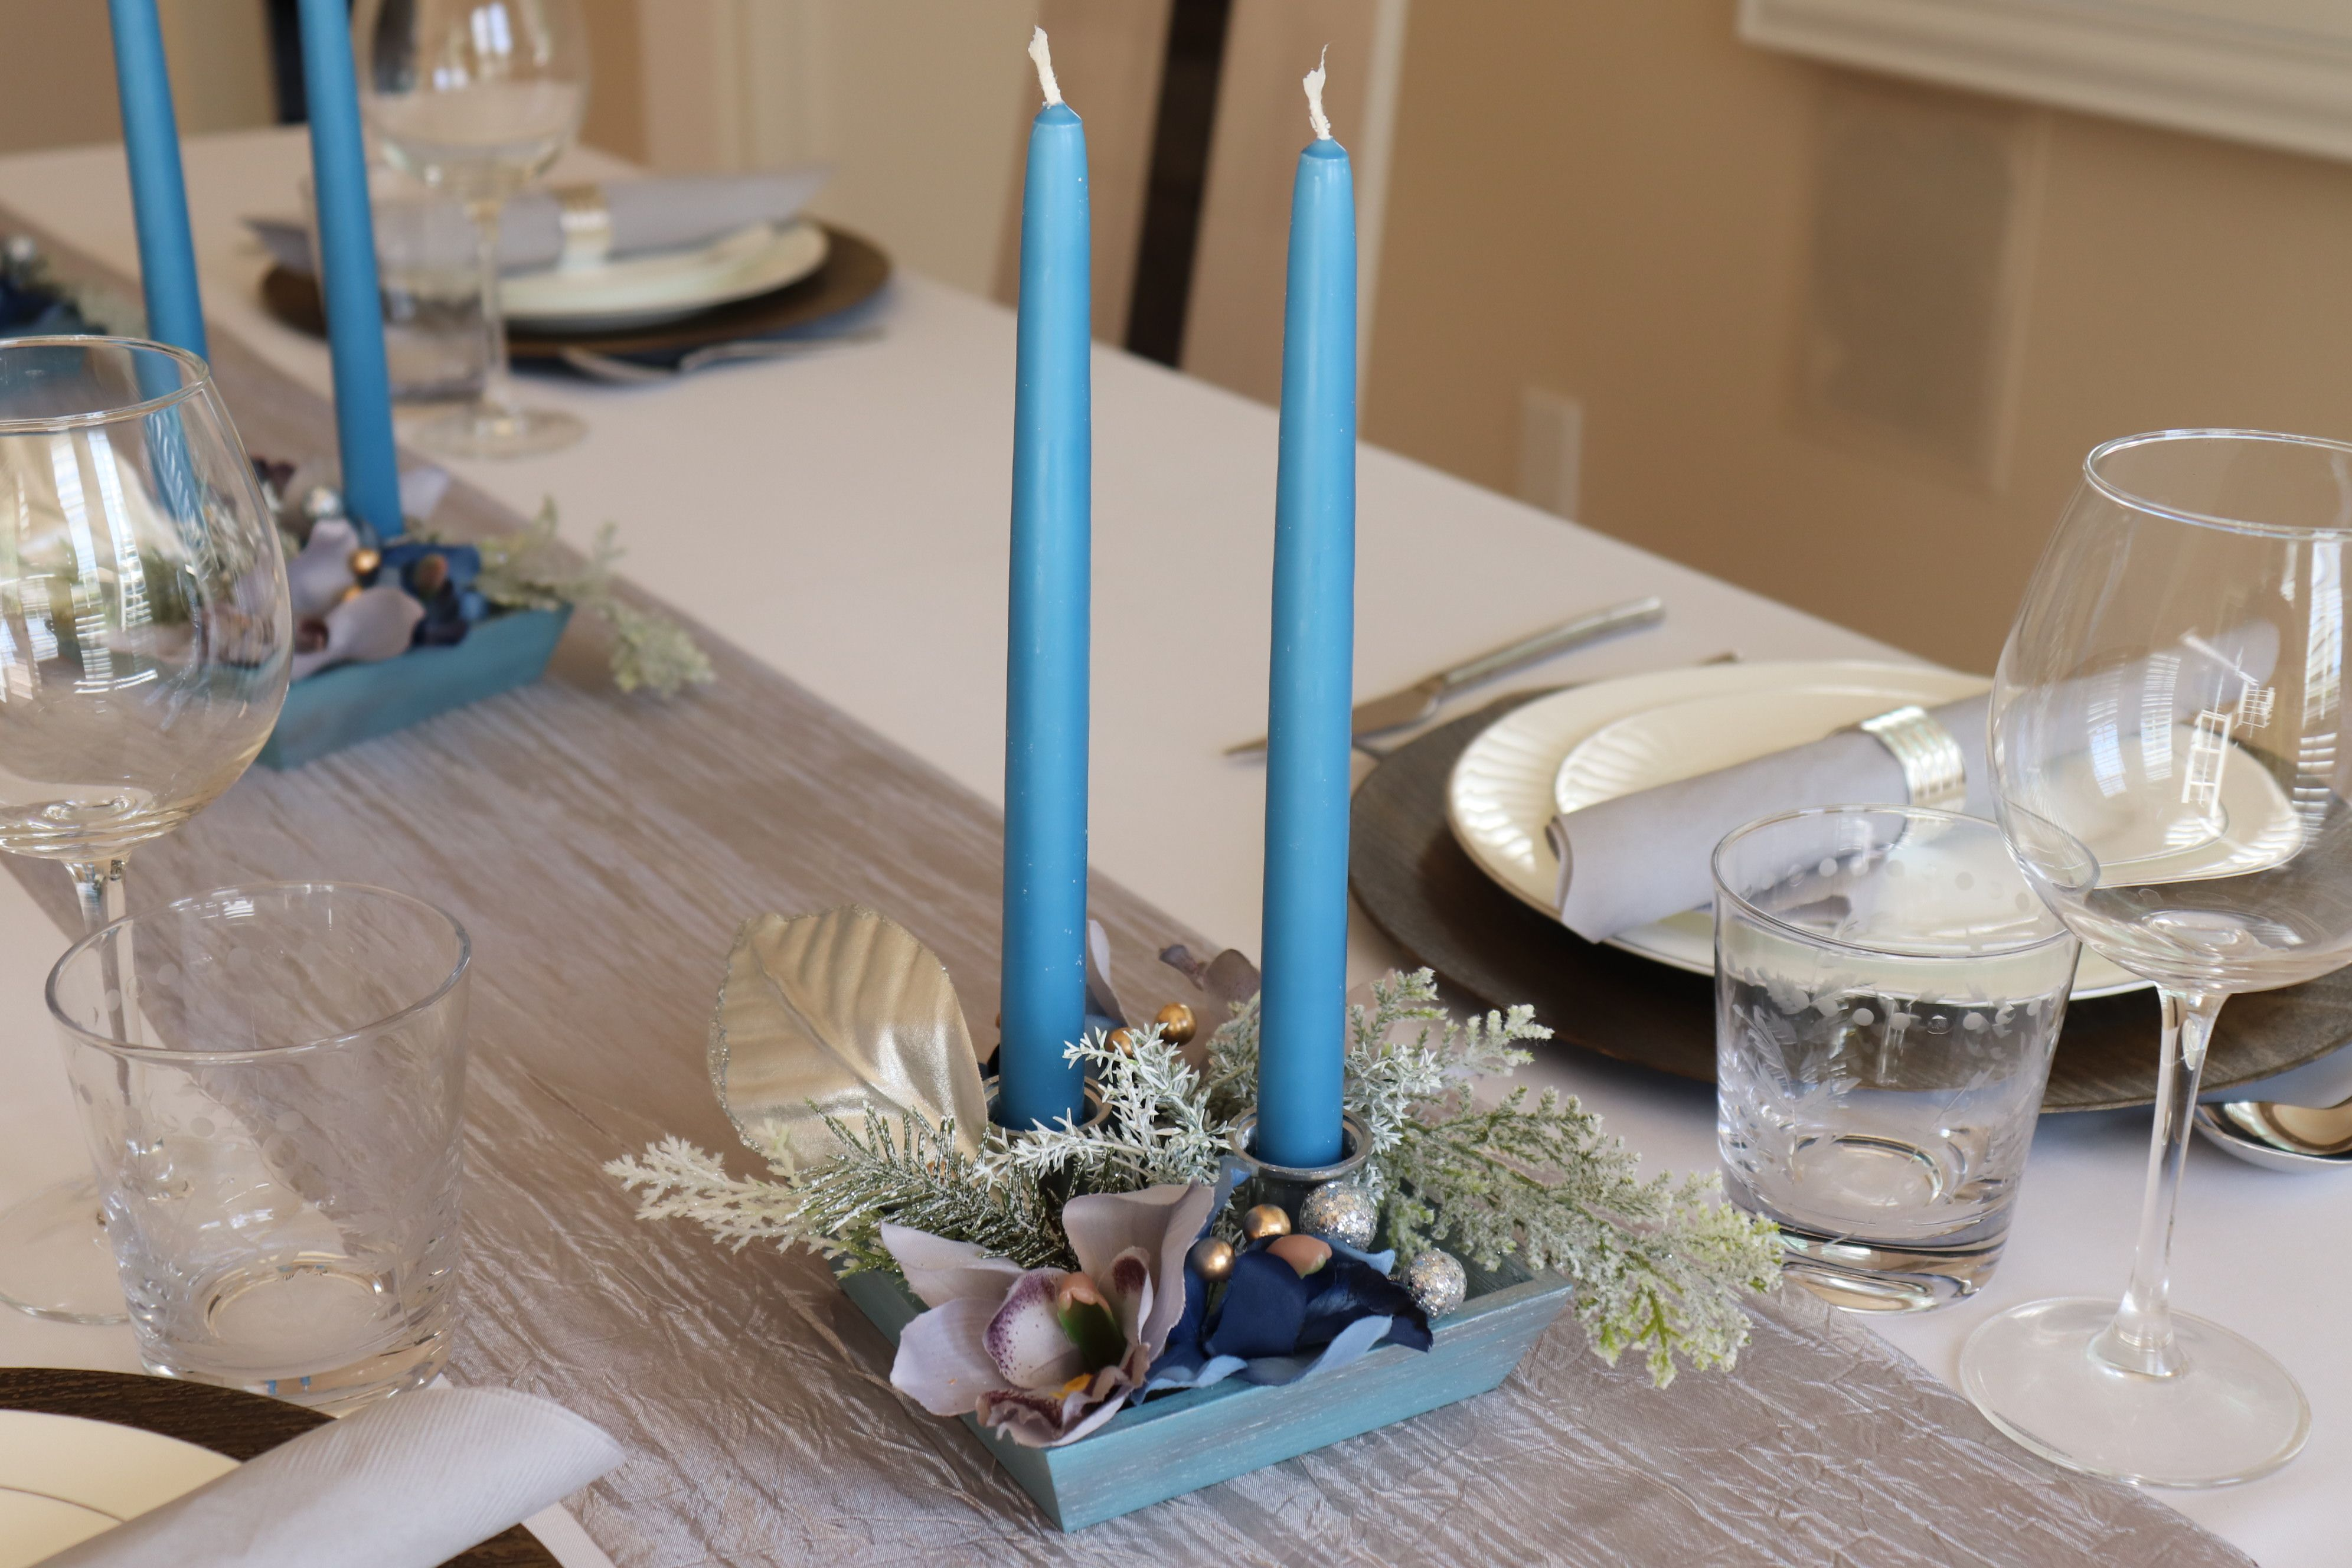 Christmas Centerpiece With Candles Blue White Candle Holder Centerpiece Christmas Centerpiece For Table Christmas Candle Centerpiece Christmas Table Centerpieces Christmas Centerpieces